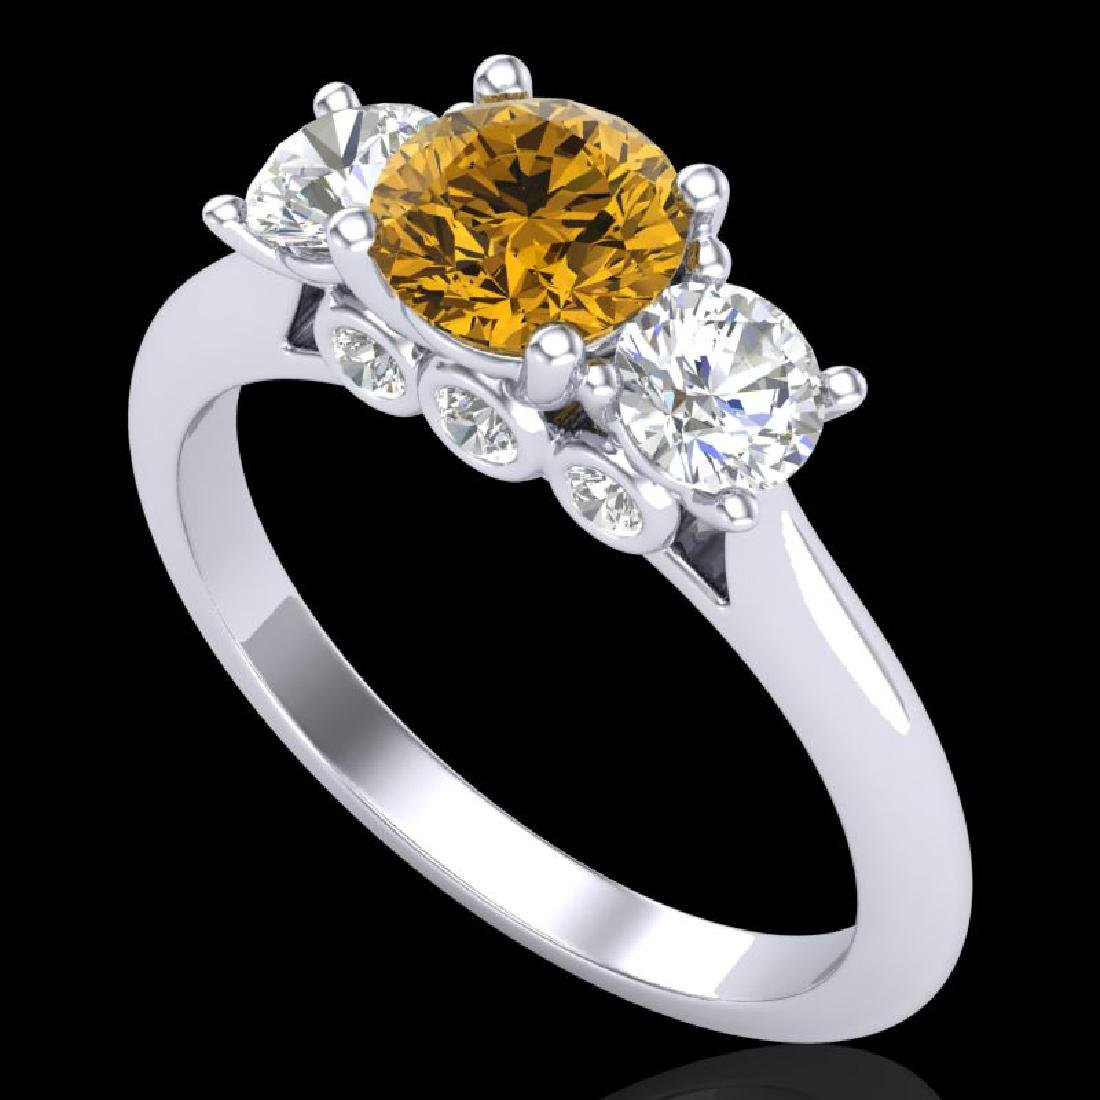 1.5 CTW Intense Fancy Yellow Diamond Art Deco 3 Stone